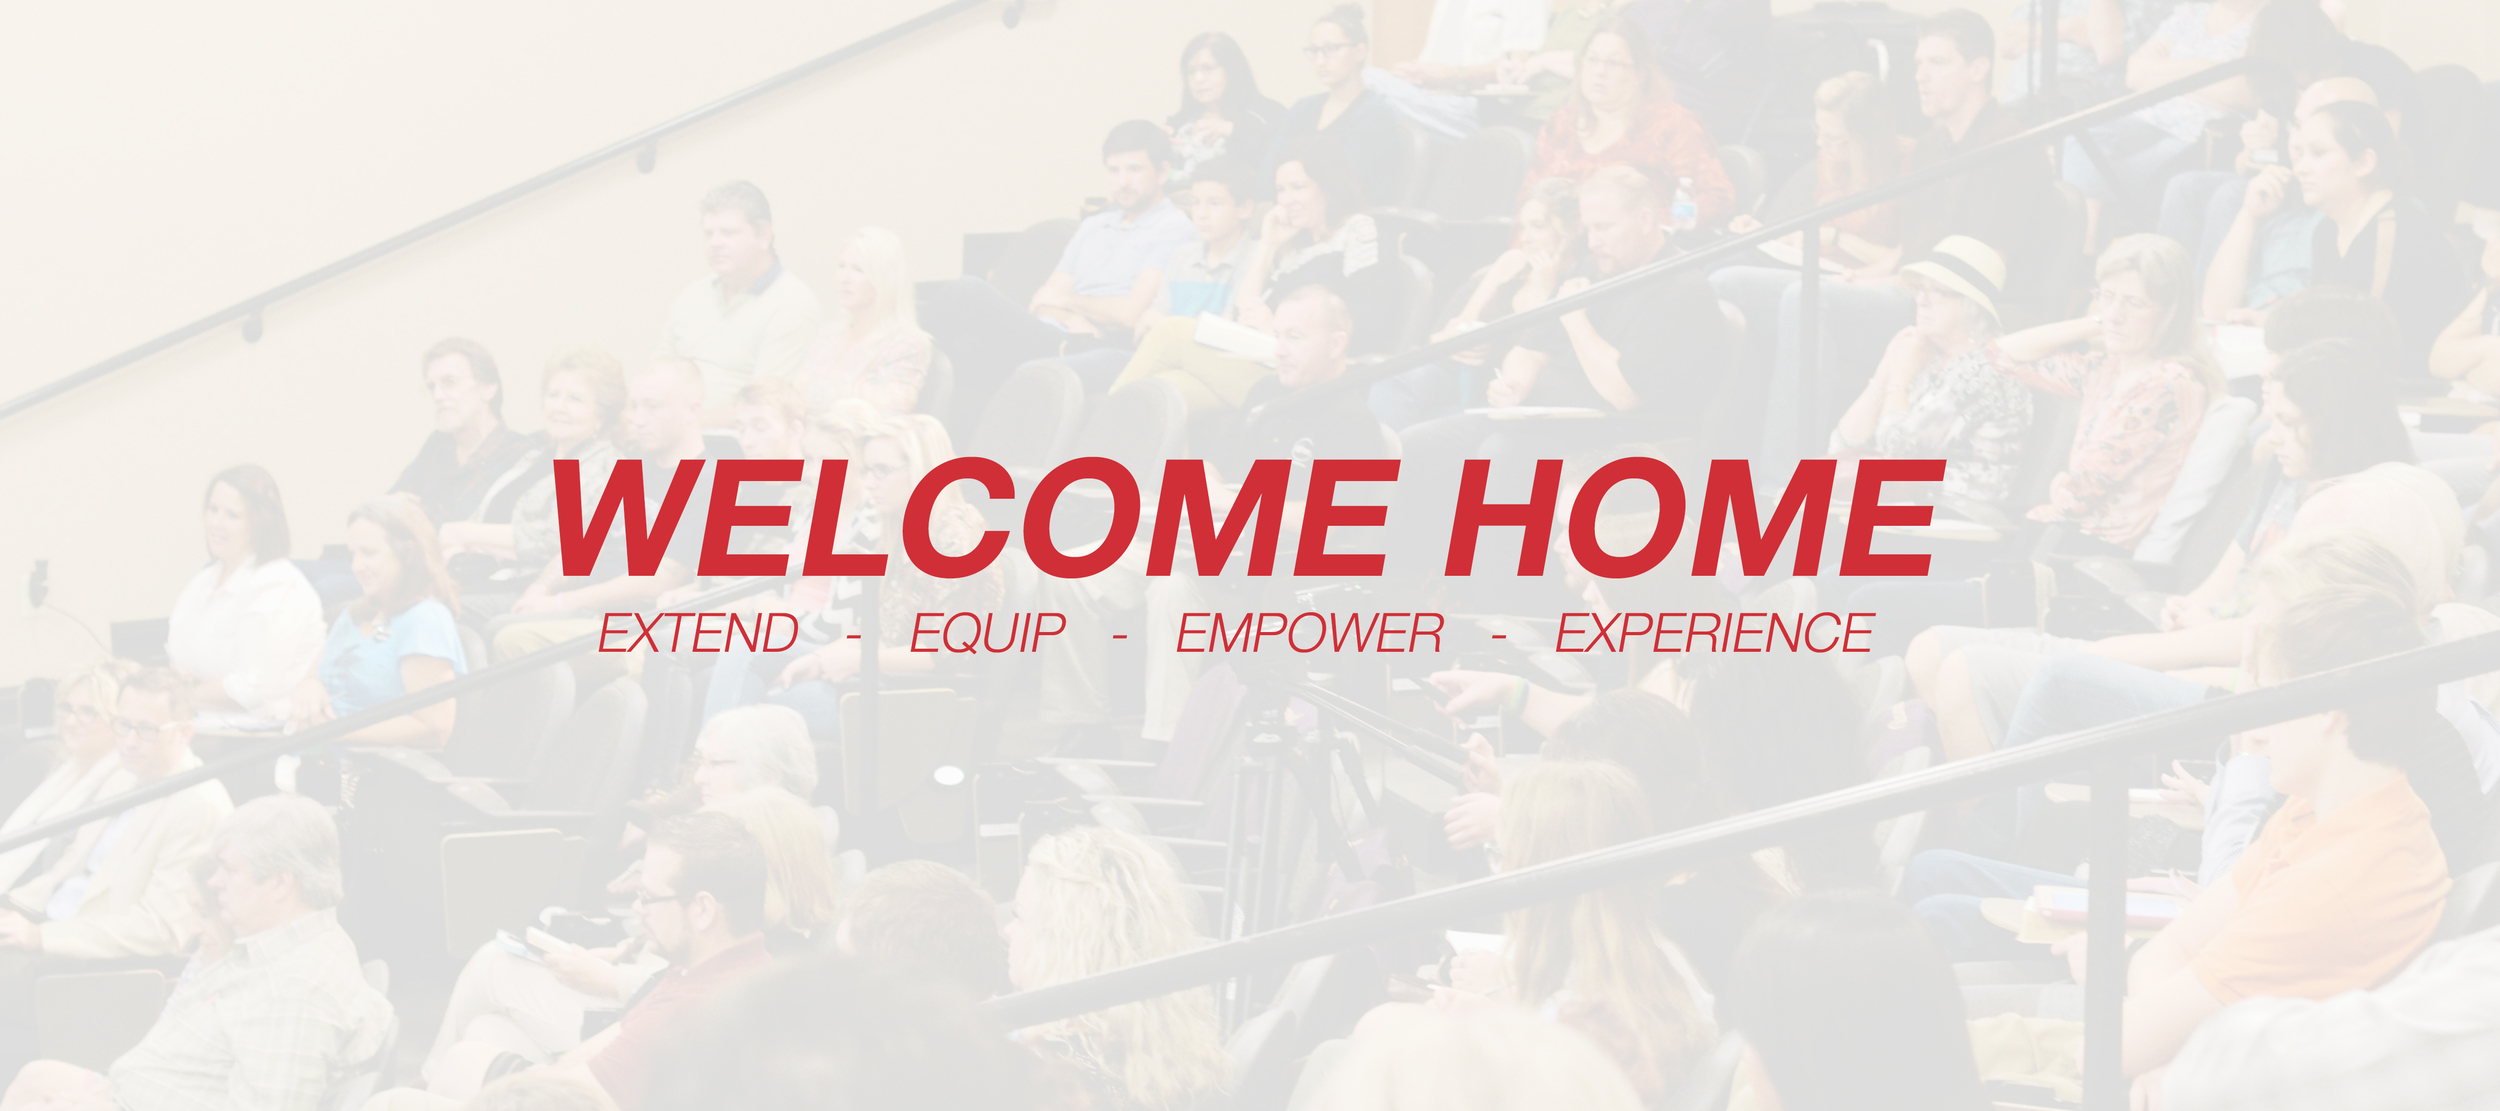 MFC - Welcome Home - Banner.jpg